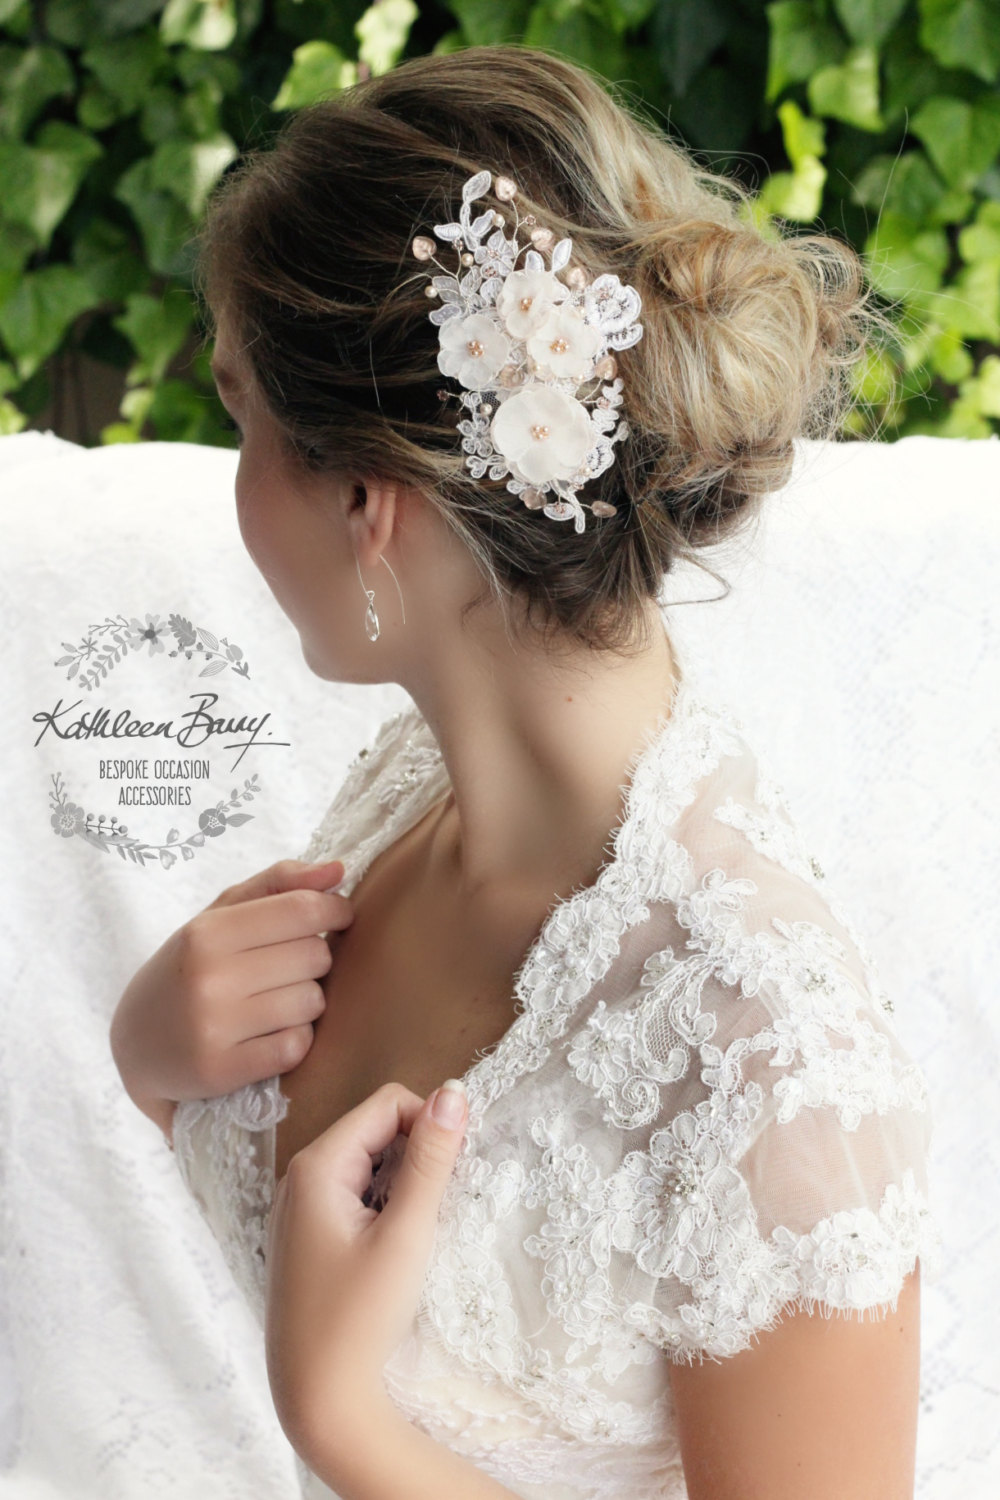 Bridal Lace Floral Hair Comb, Blush Pink Rose Gold Wedding Hair Piece, in Off White, Nude, Blush, Ivory Style Marilyn